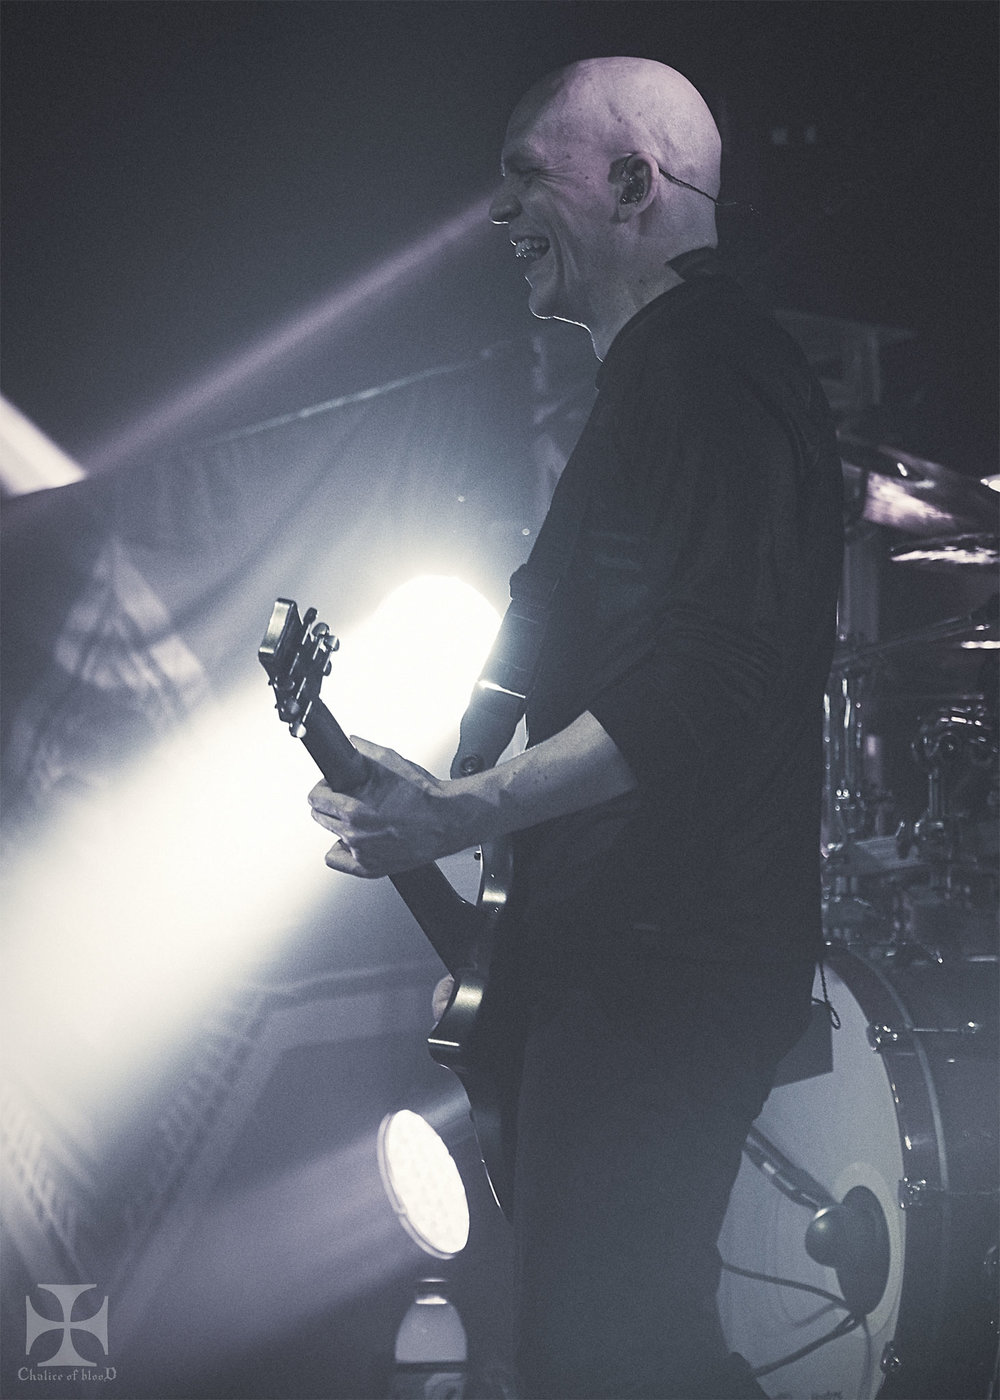 2017.05-Devin-Townsend---17-Exposure-watermarked.jpg